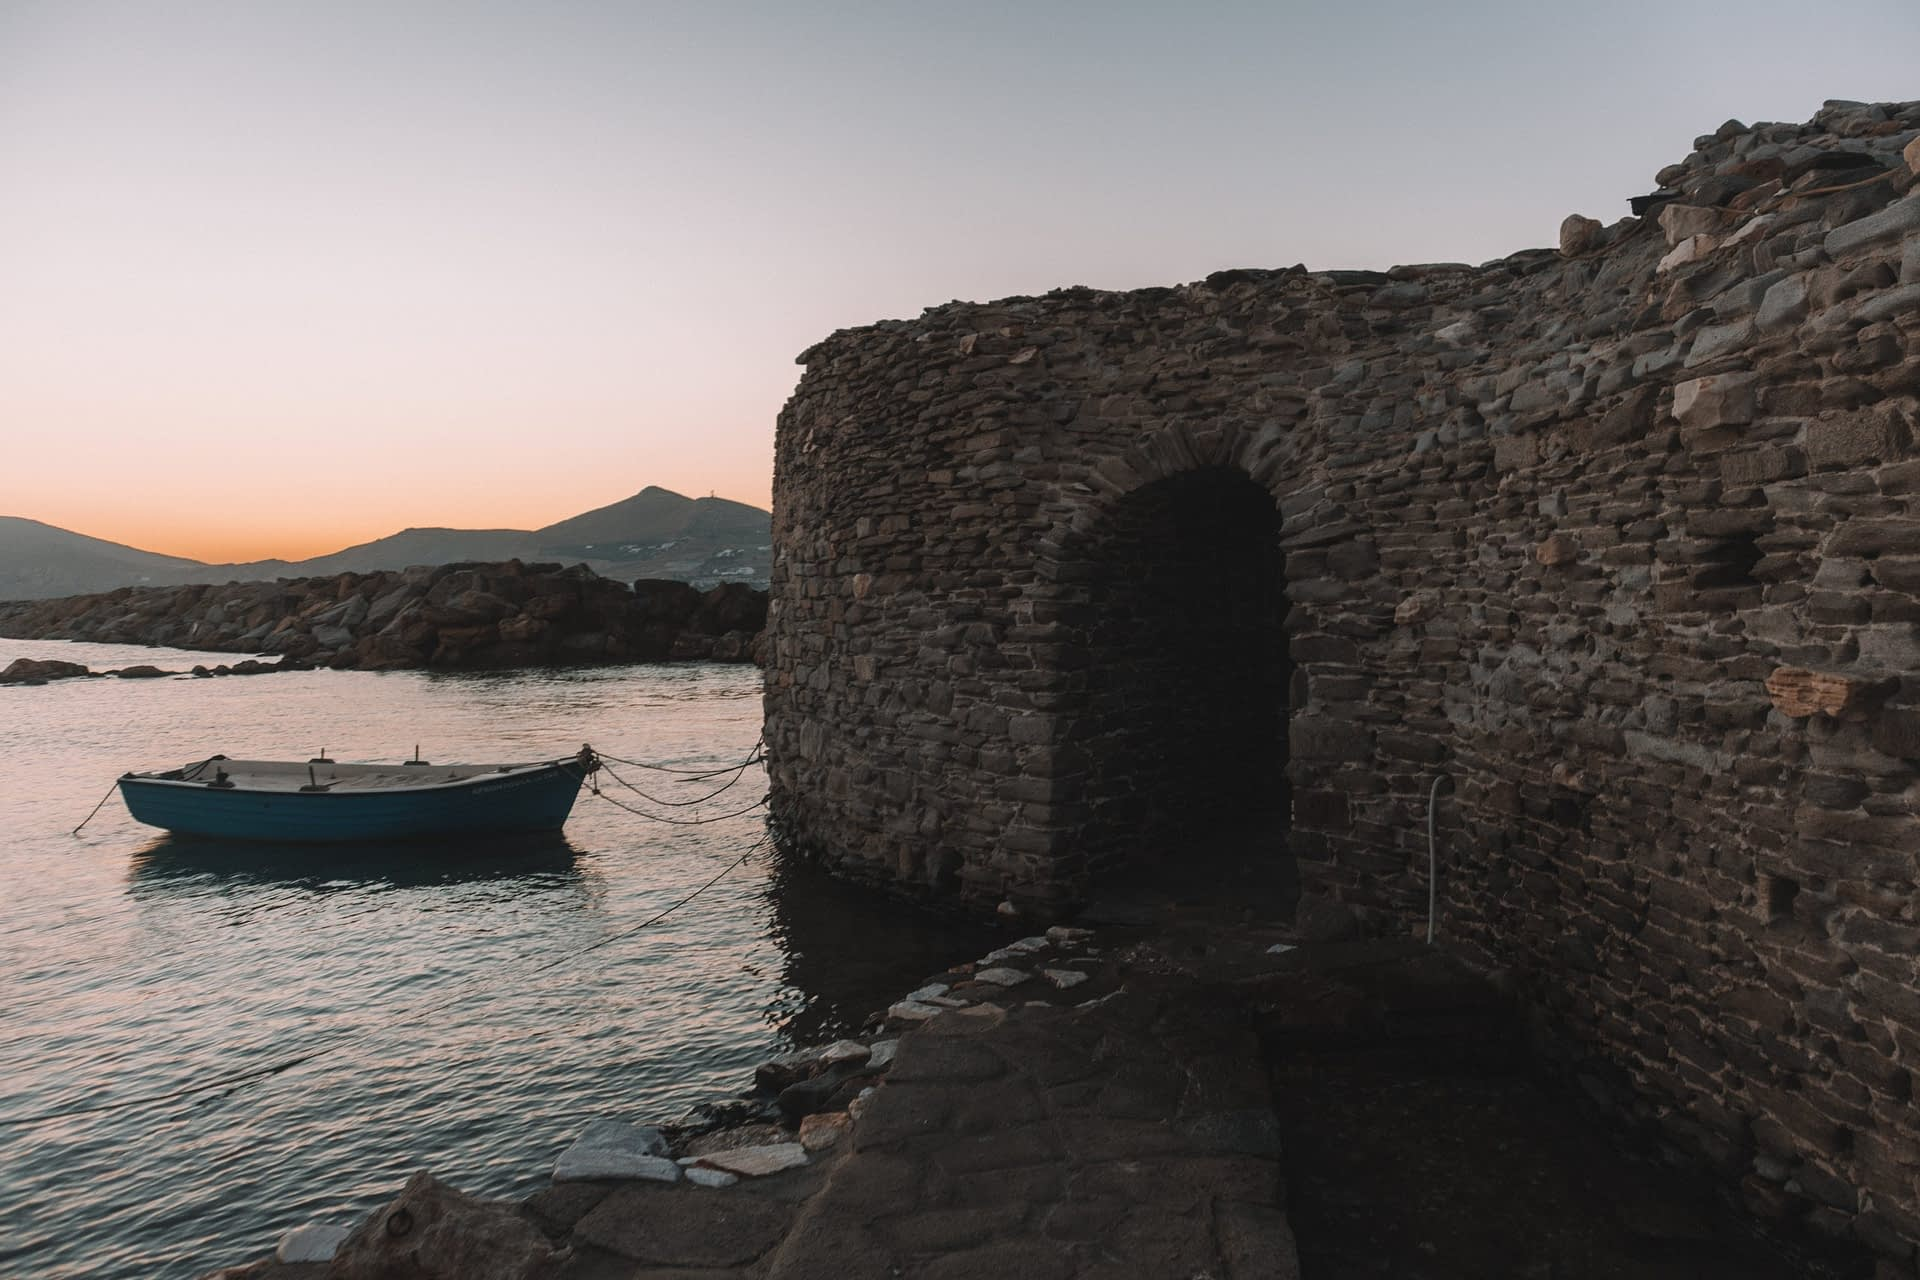 Naoussa venetian castle at sunset with a boat in the background. Paros travel blog